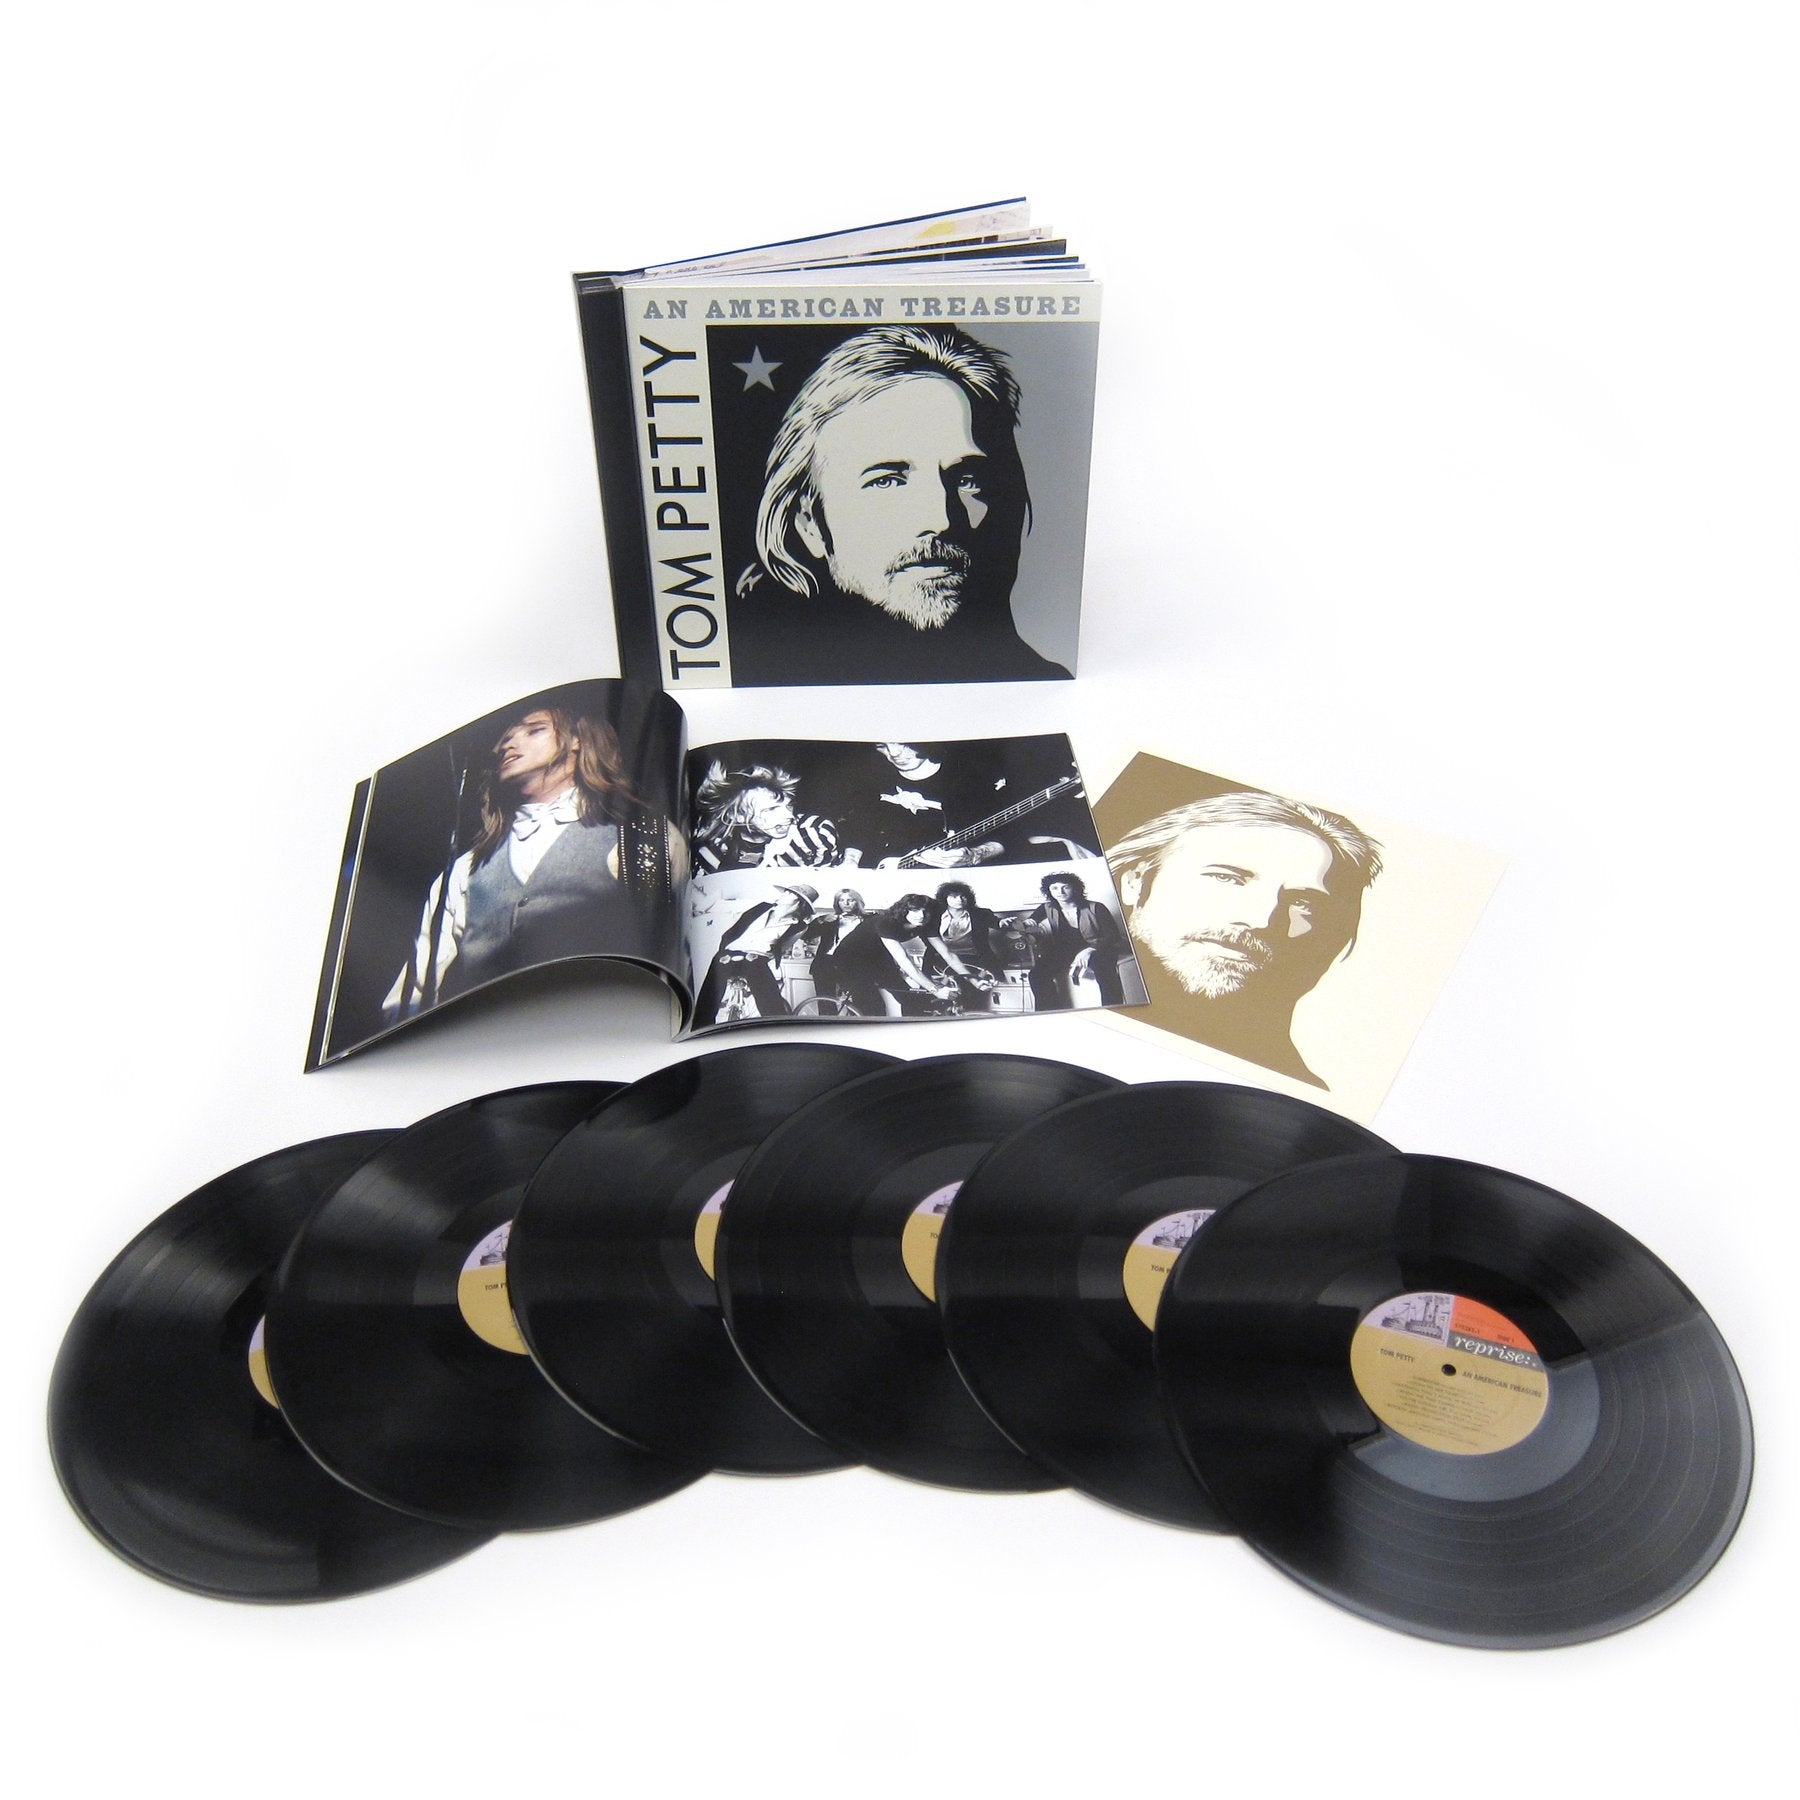 TOM PETTY - AN AMERICAN TREASURE (6LP)